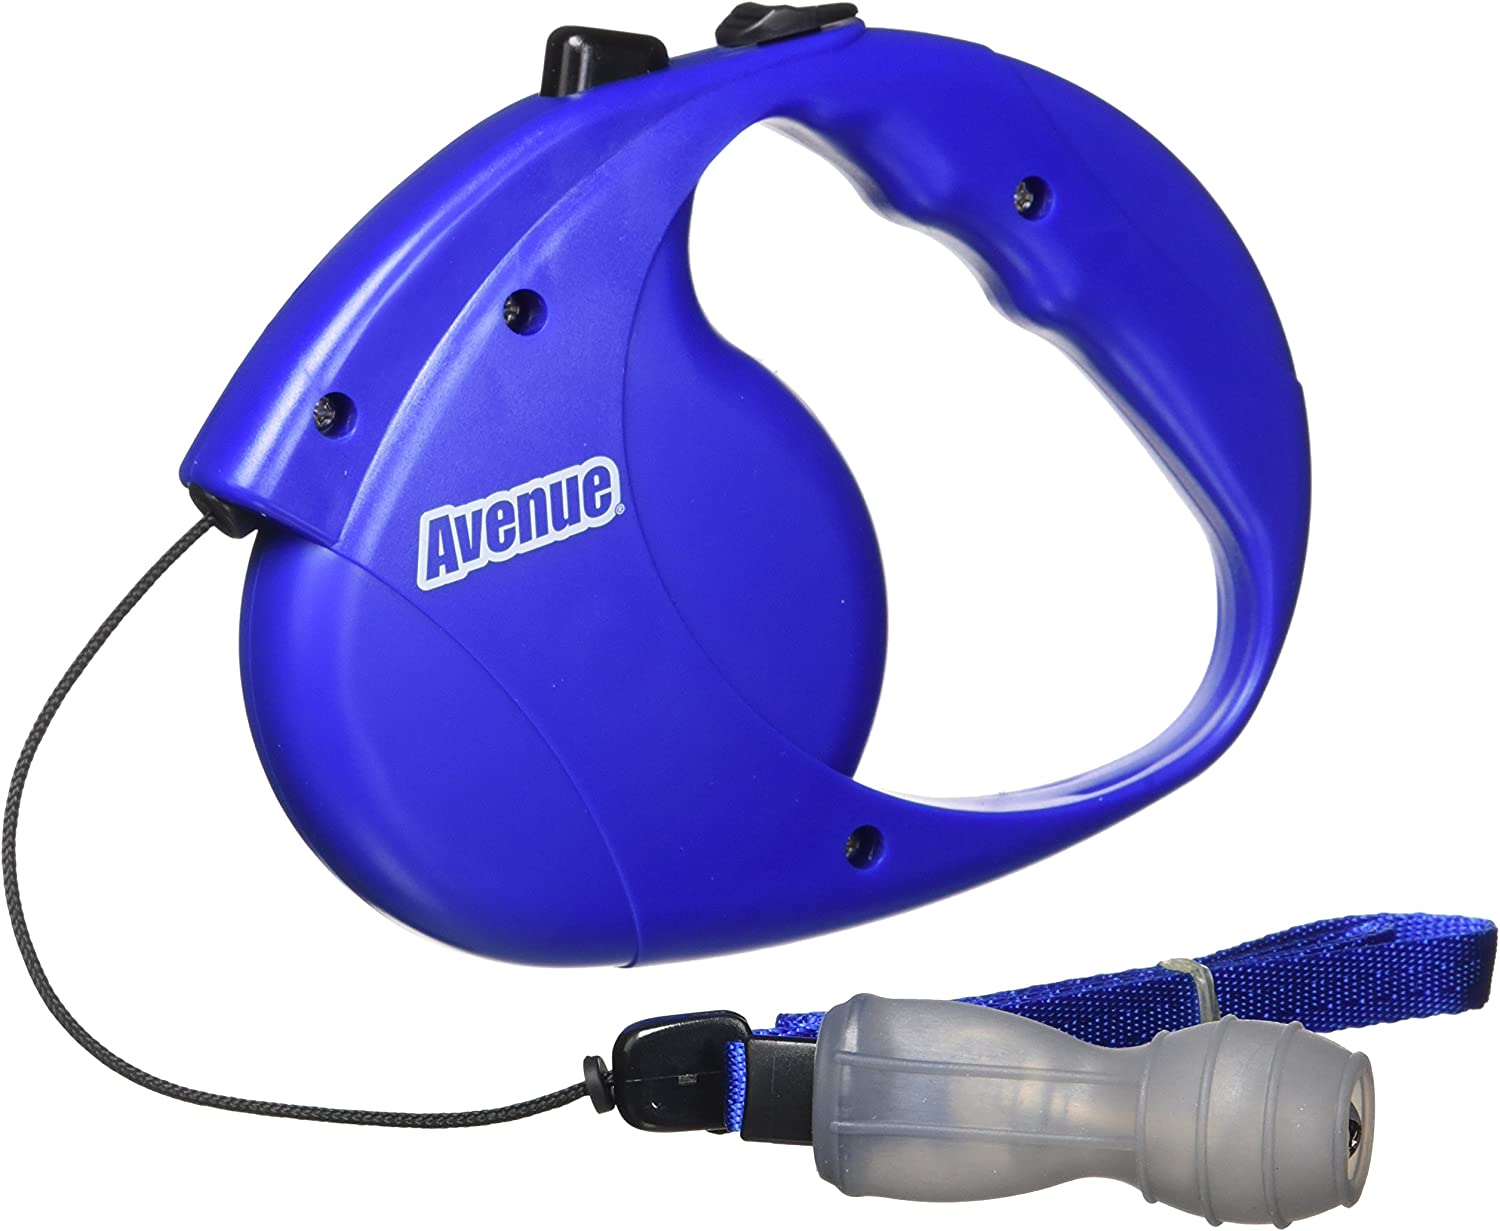 Avenue Retractable Cord Leash for Dogs, bluee, Small, 16Feet